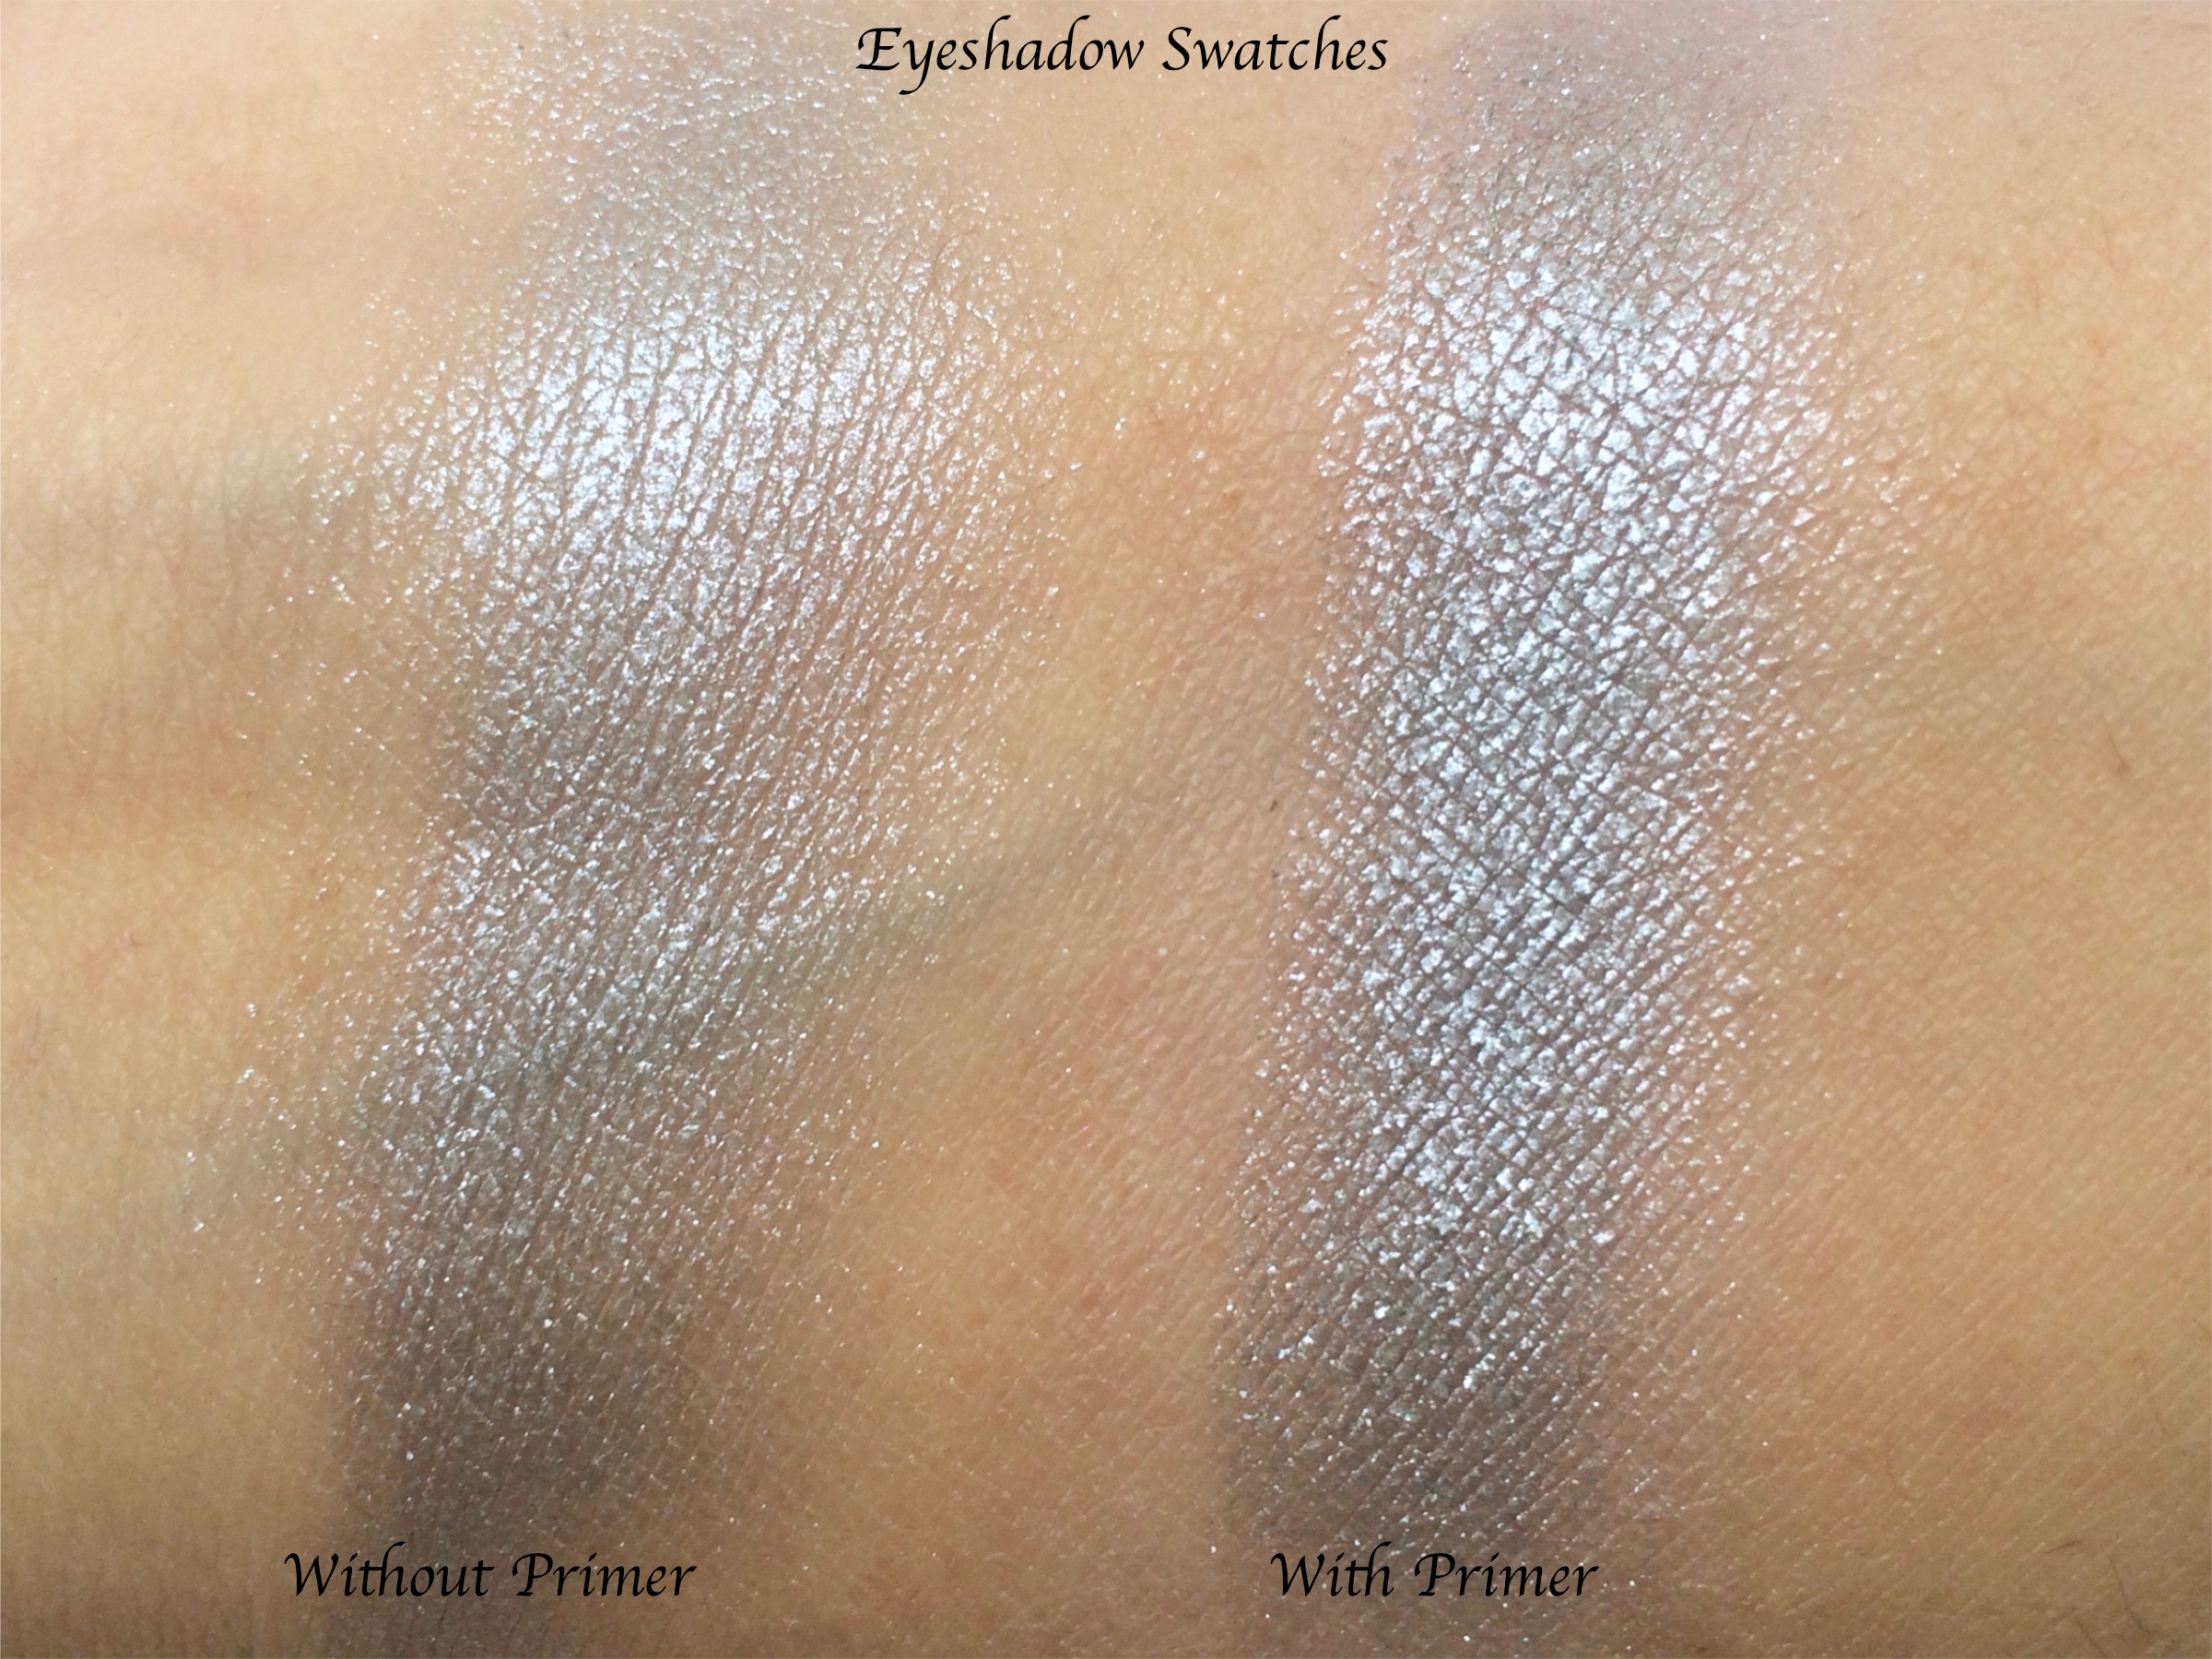 24 Hour Photo Finish Shadow Primer by Smashbox #5